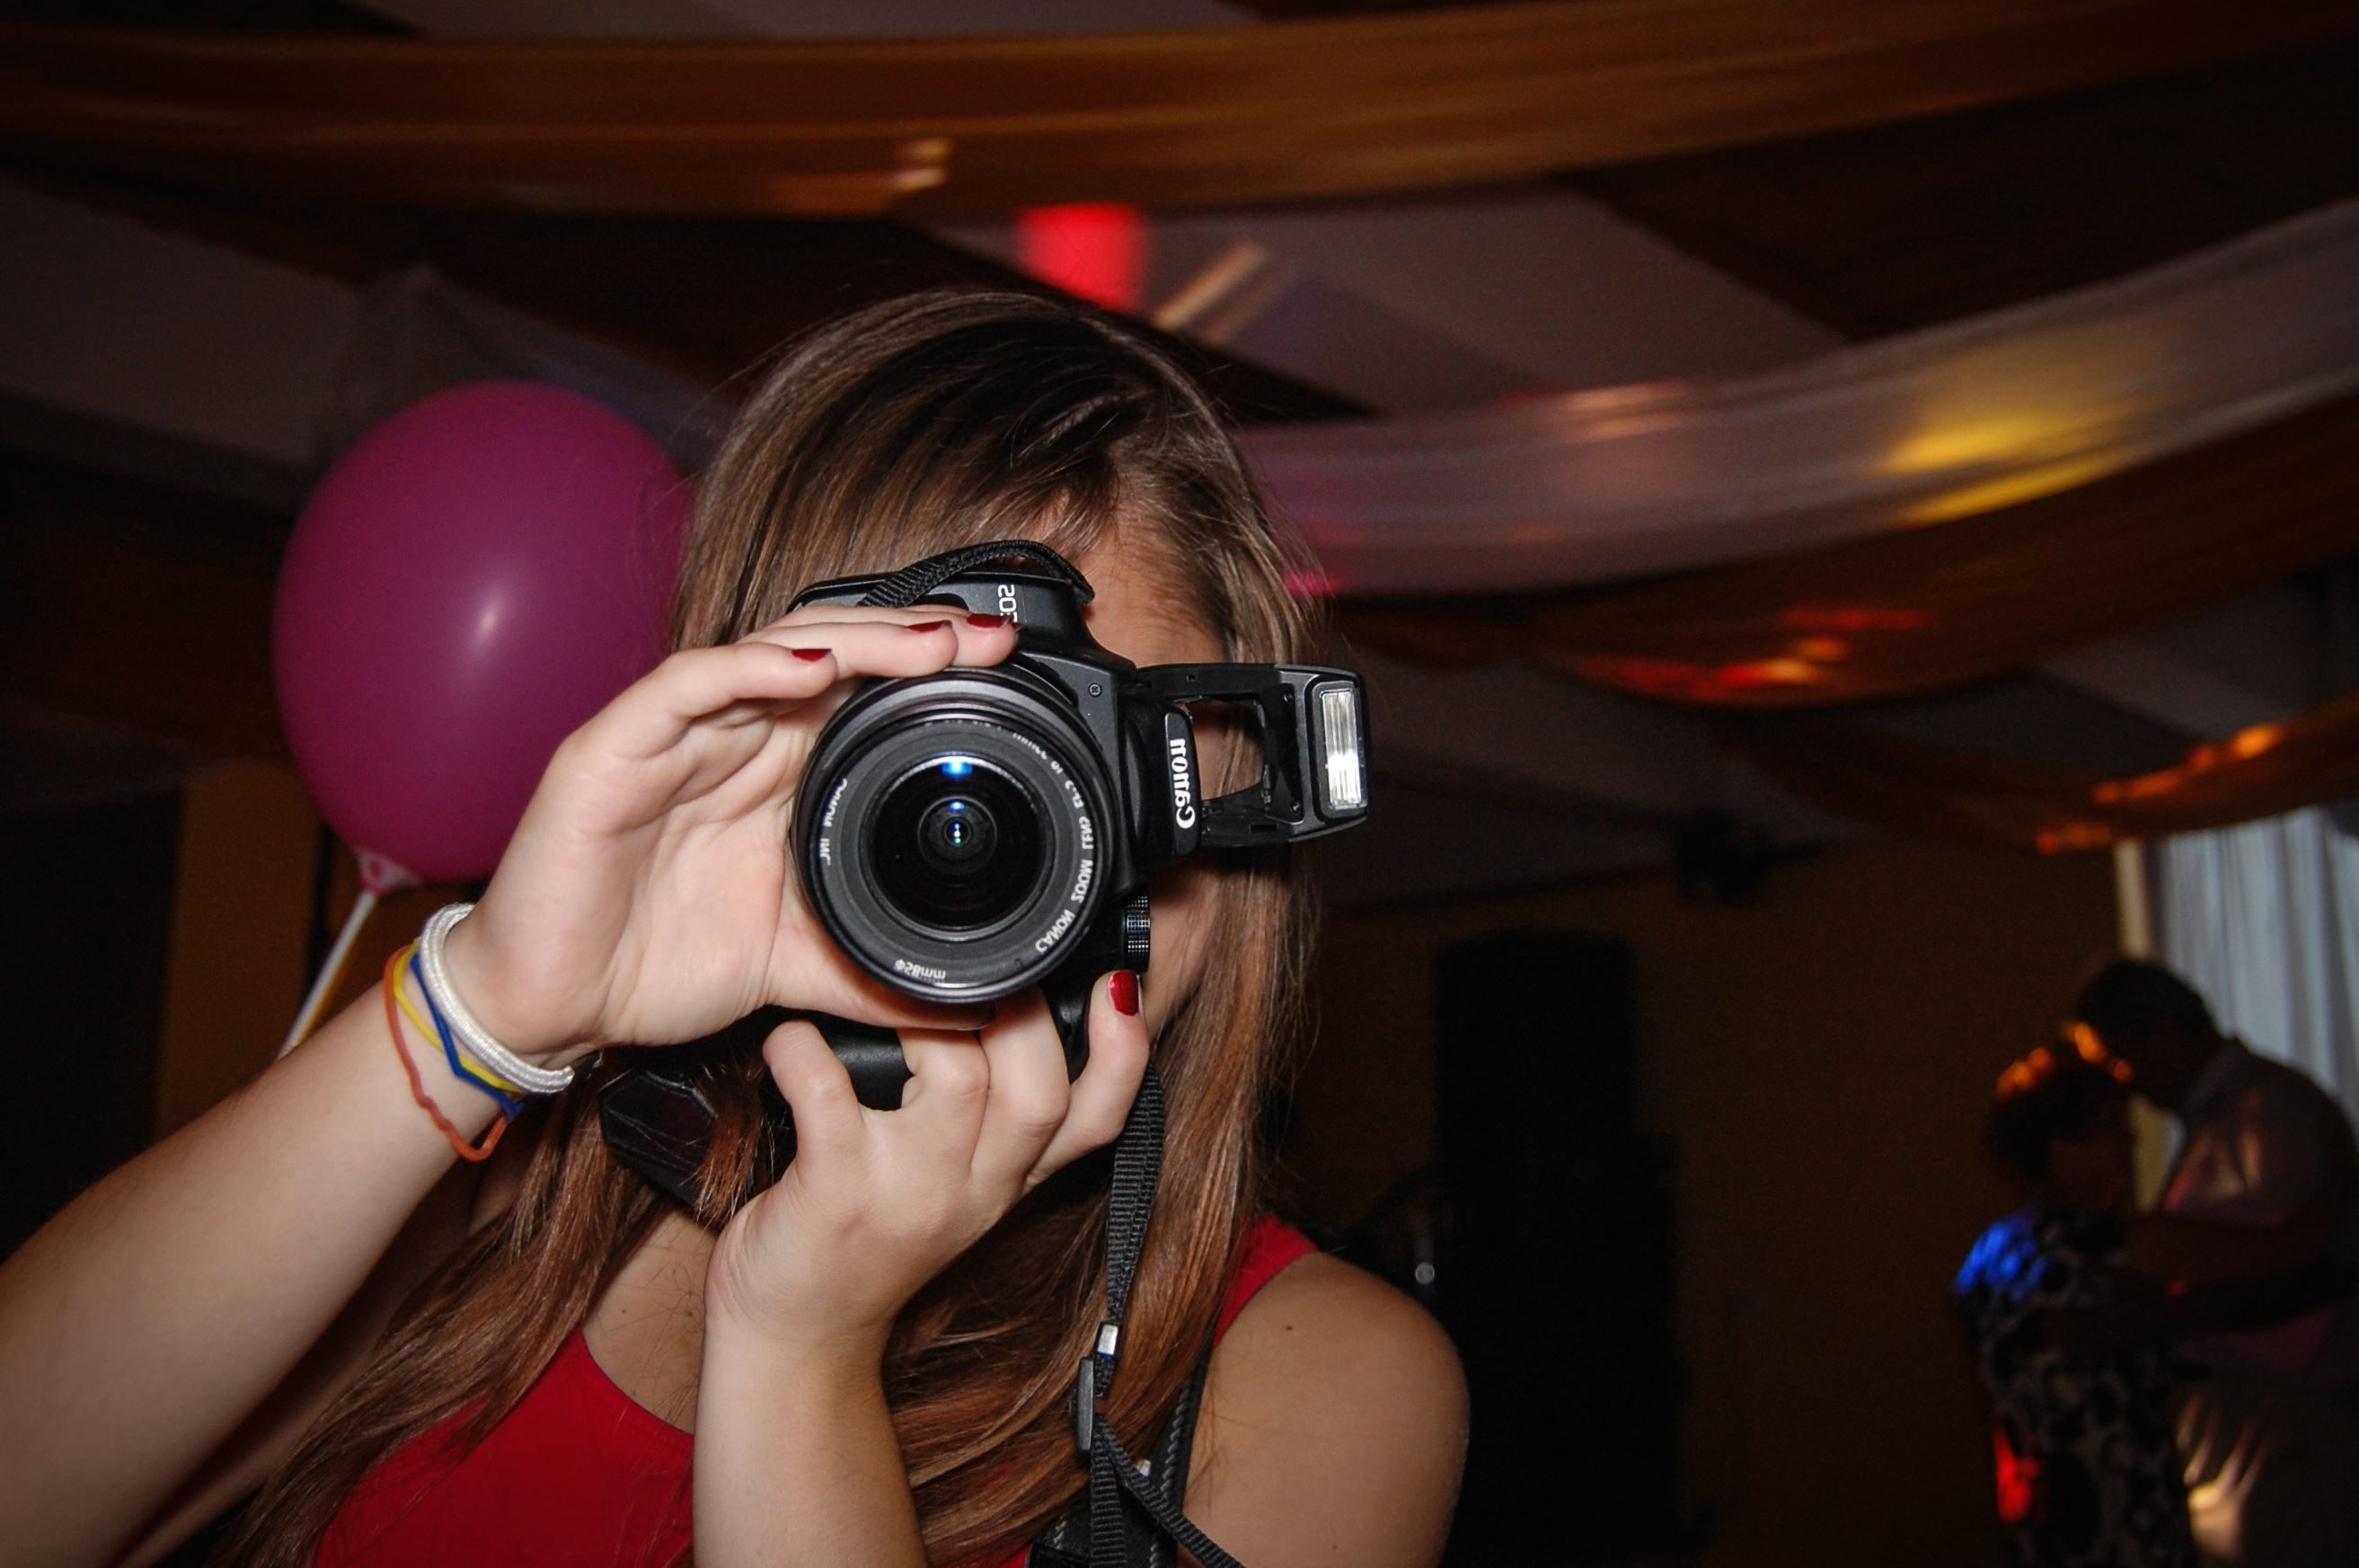 Free Picture Photographer Photo Camera Girl Instrument